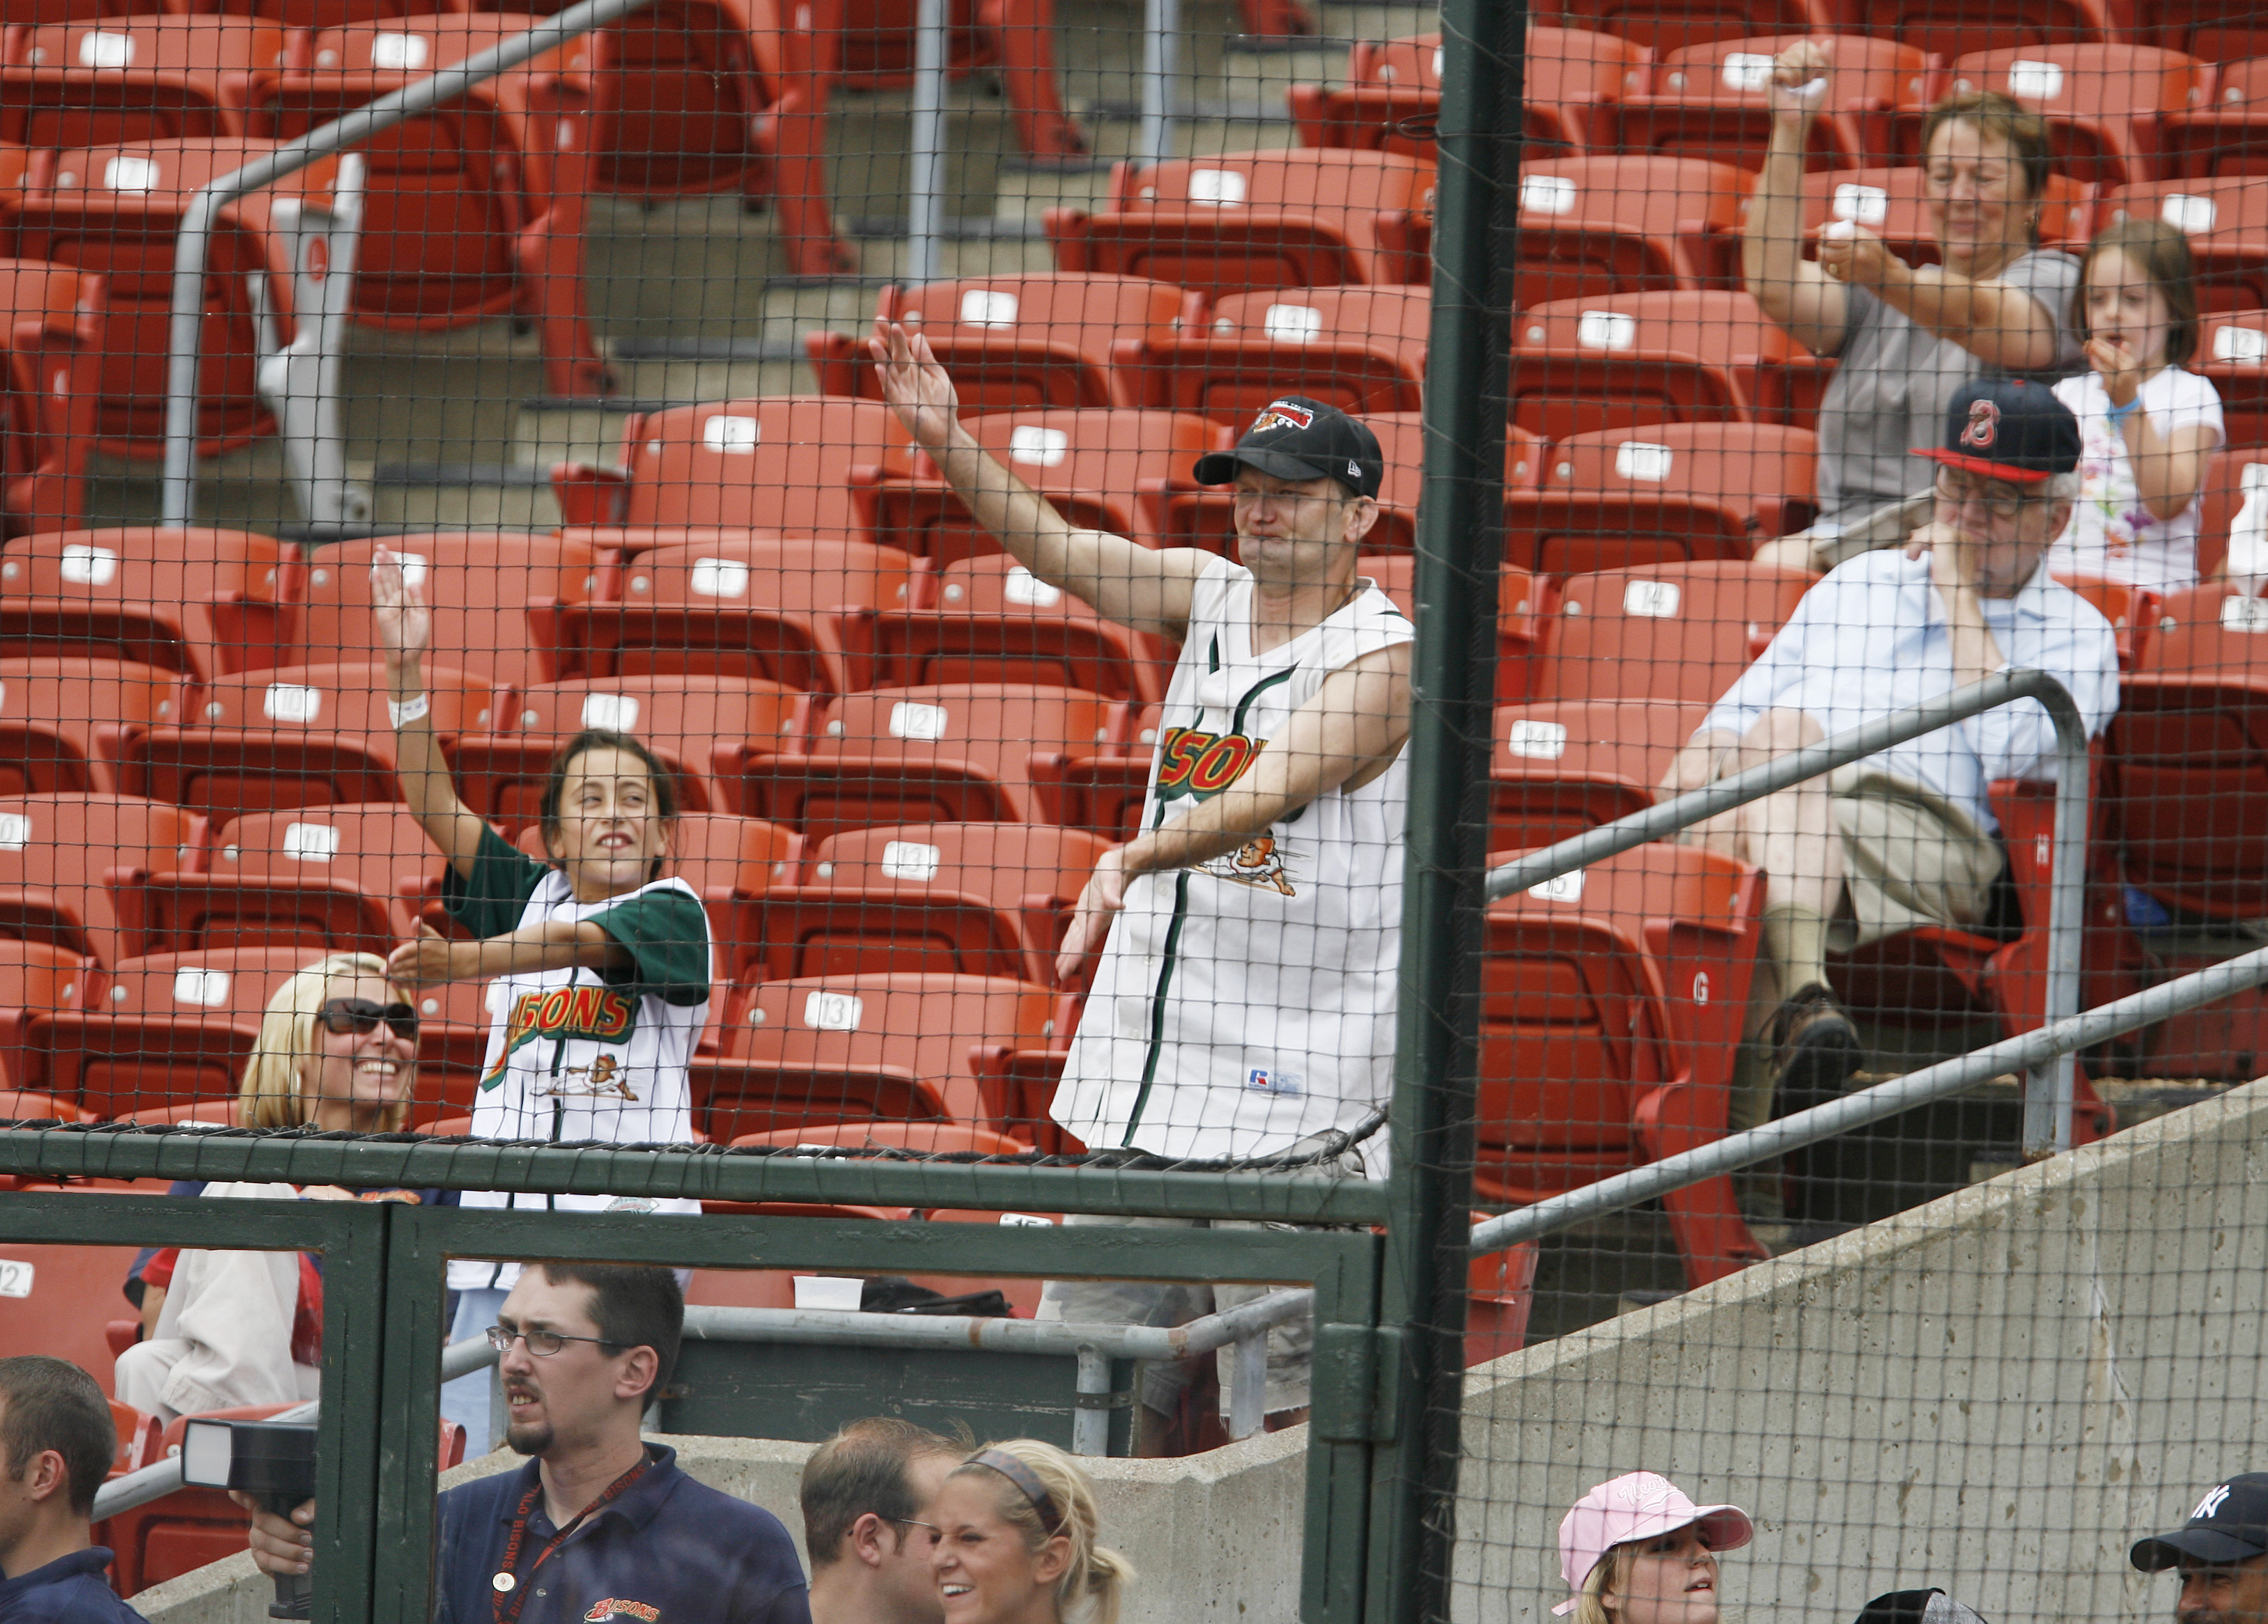 Bisons fans dance behind home plate to the song played when Andy Marte gets up to the plate. (James P. McCoy/Buffalo News)